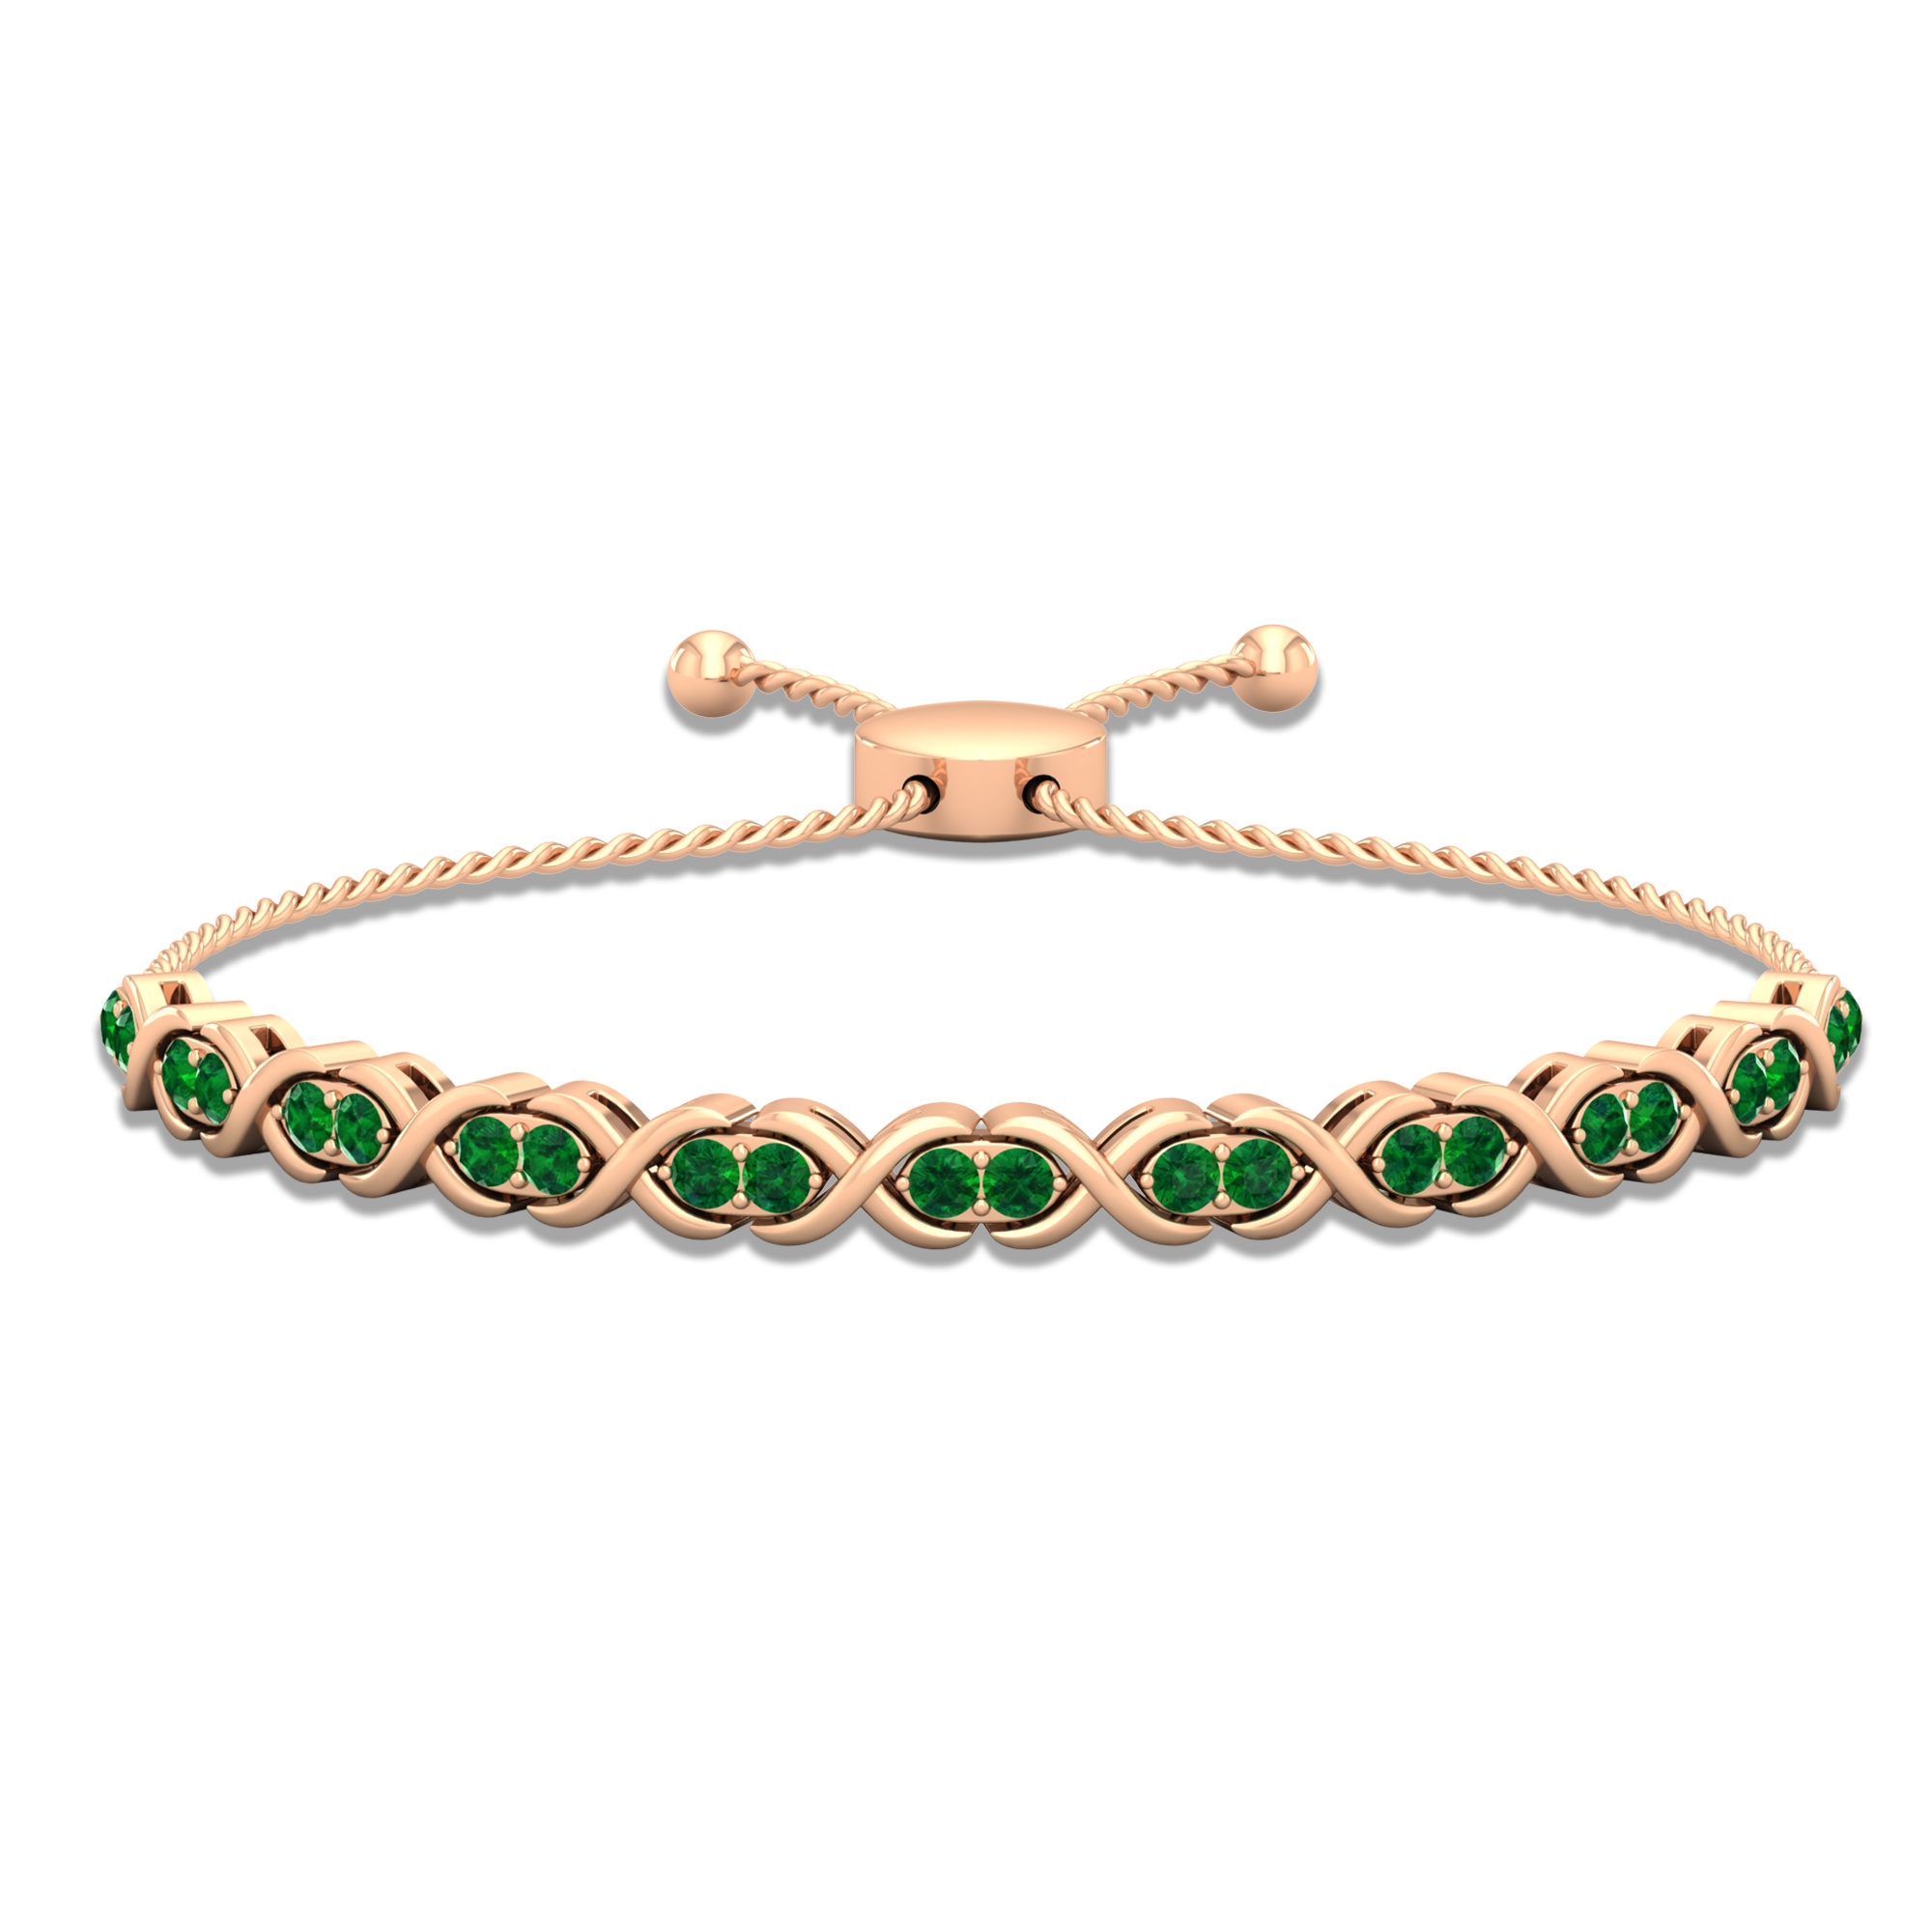 1.25 CT Round Cut Emerald Tennis Bolo Bracelet in Prong Setting